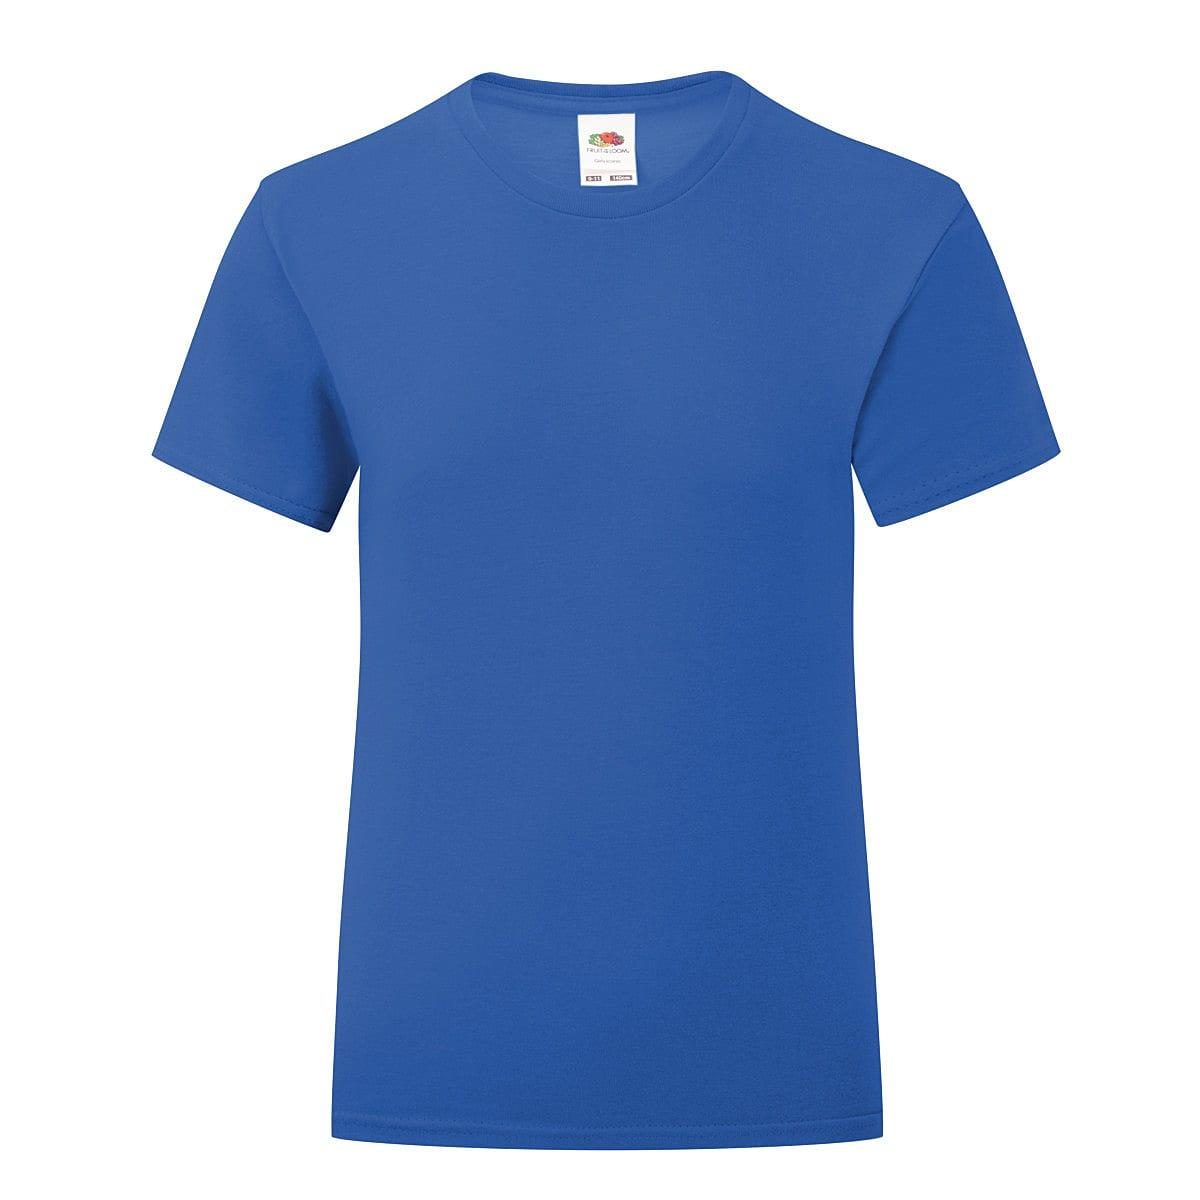 Fruit Of The Loom Girls Iconic T-Shirt in Royal Blue (Product Code: 61025)